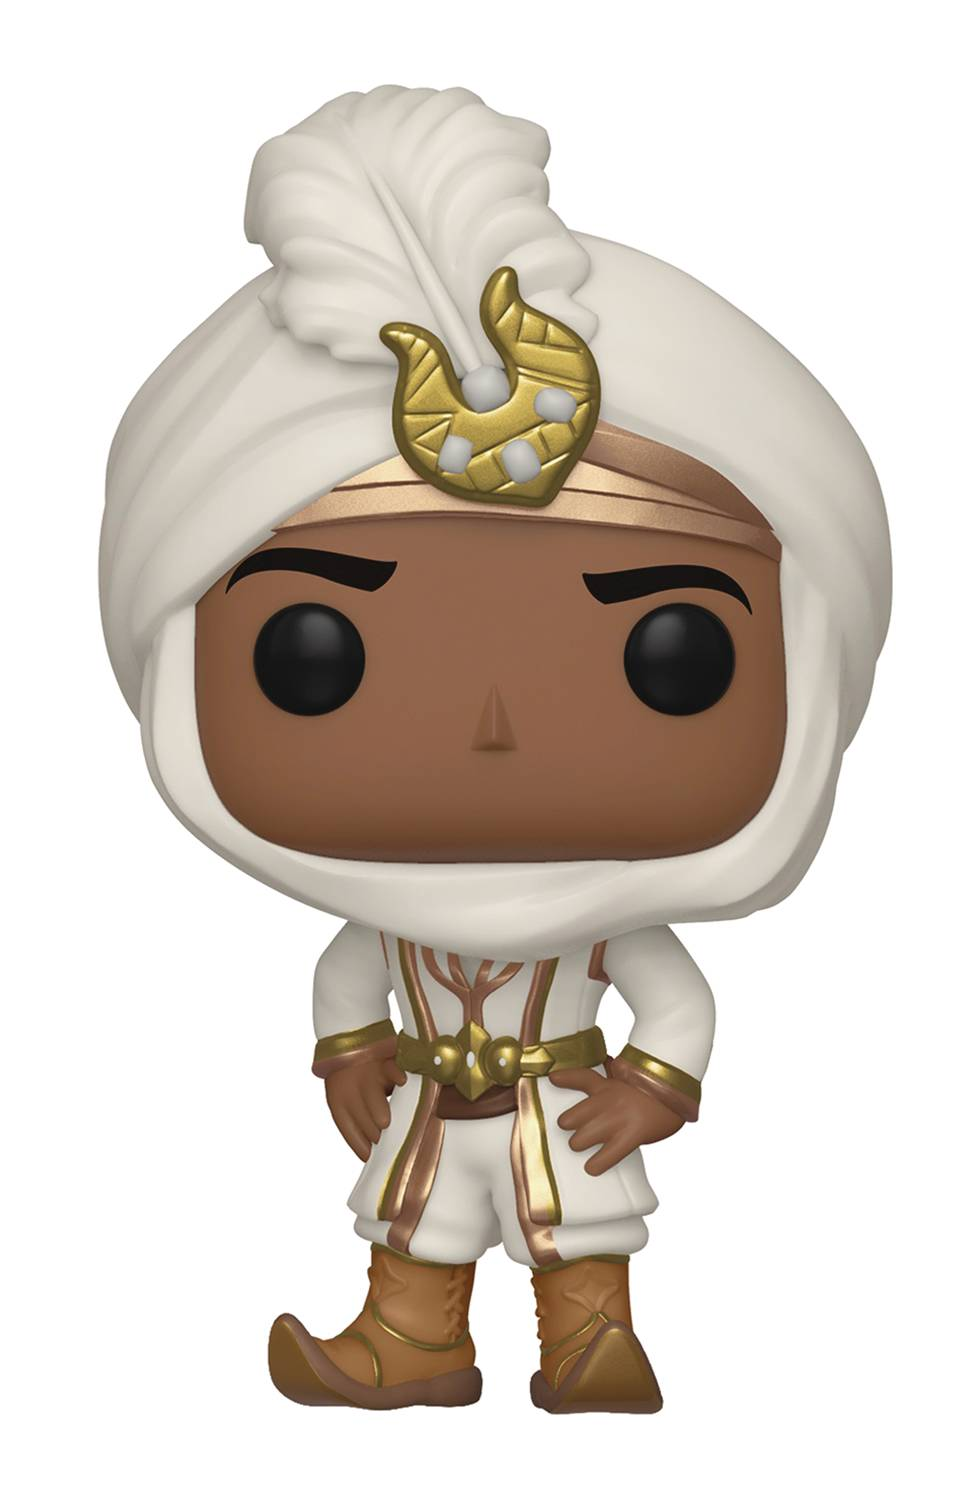 POP Movie Disney's Aladdin Prince Ali Funko POP